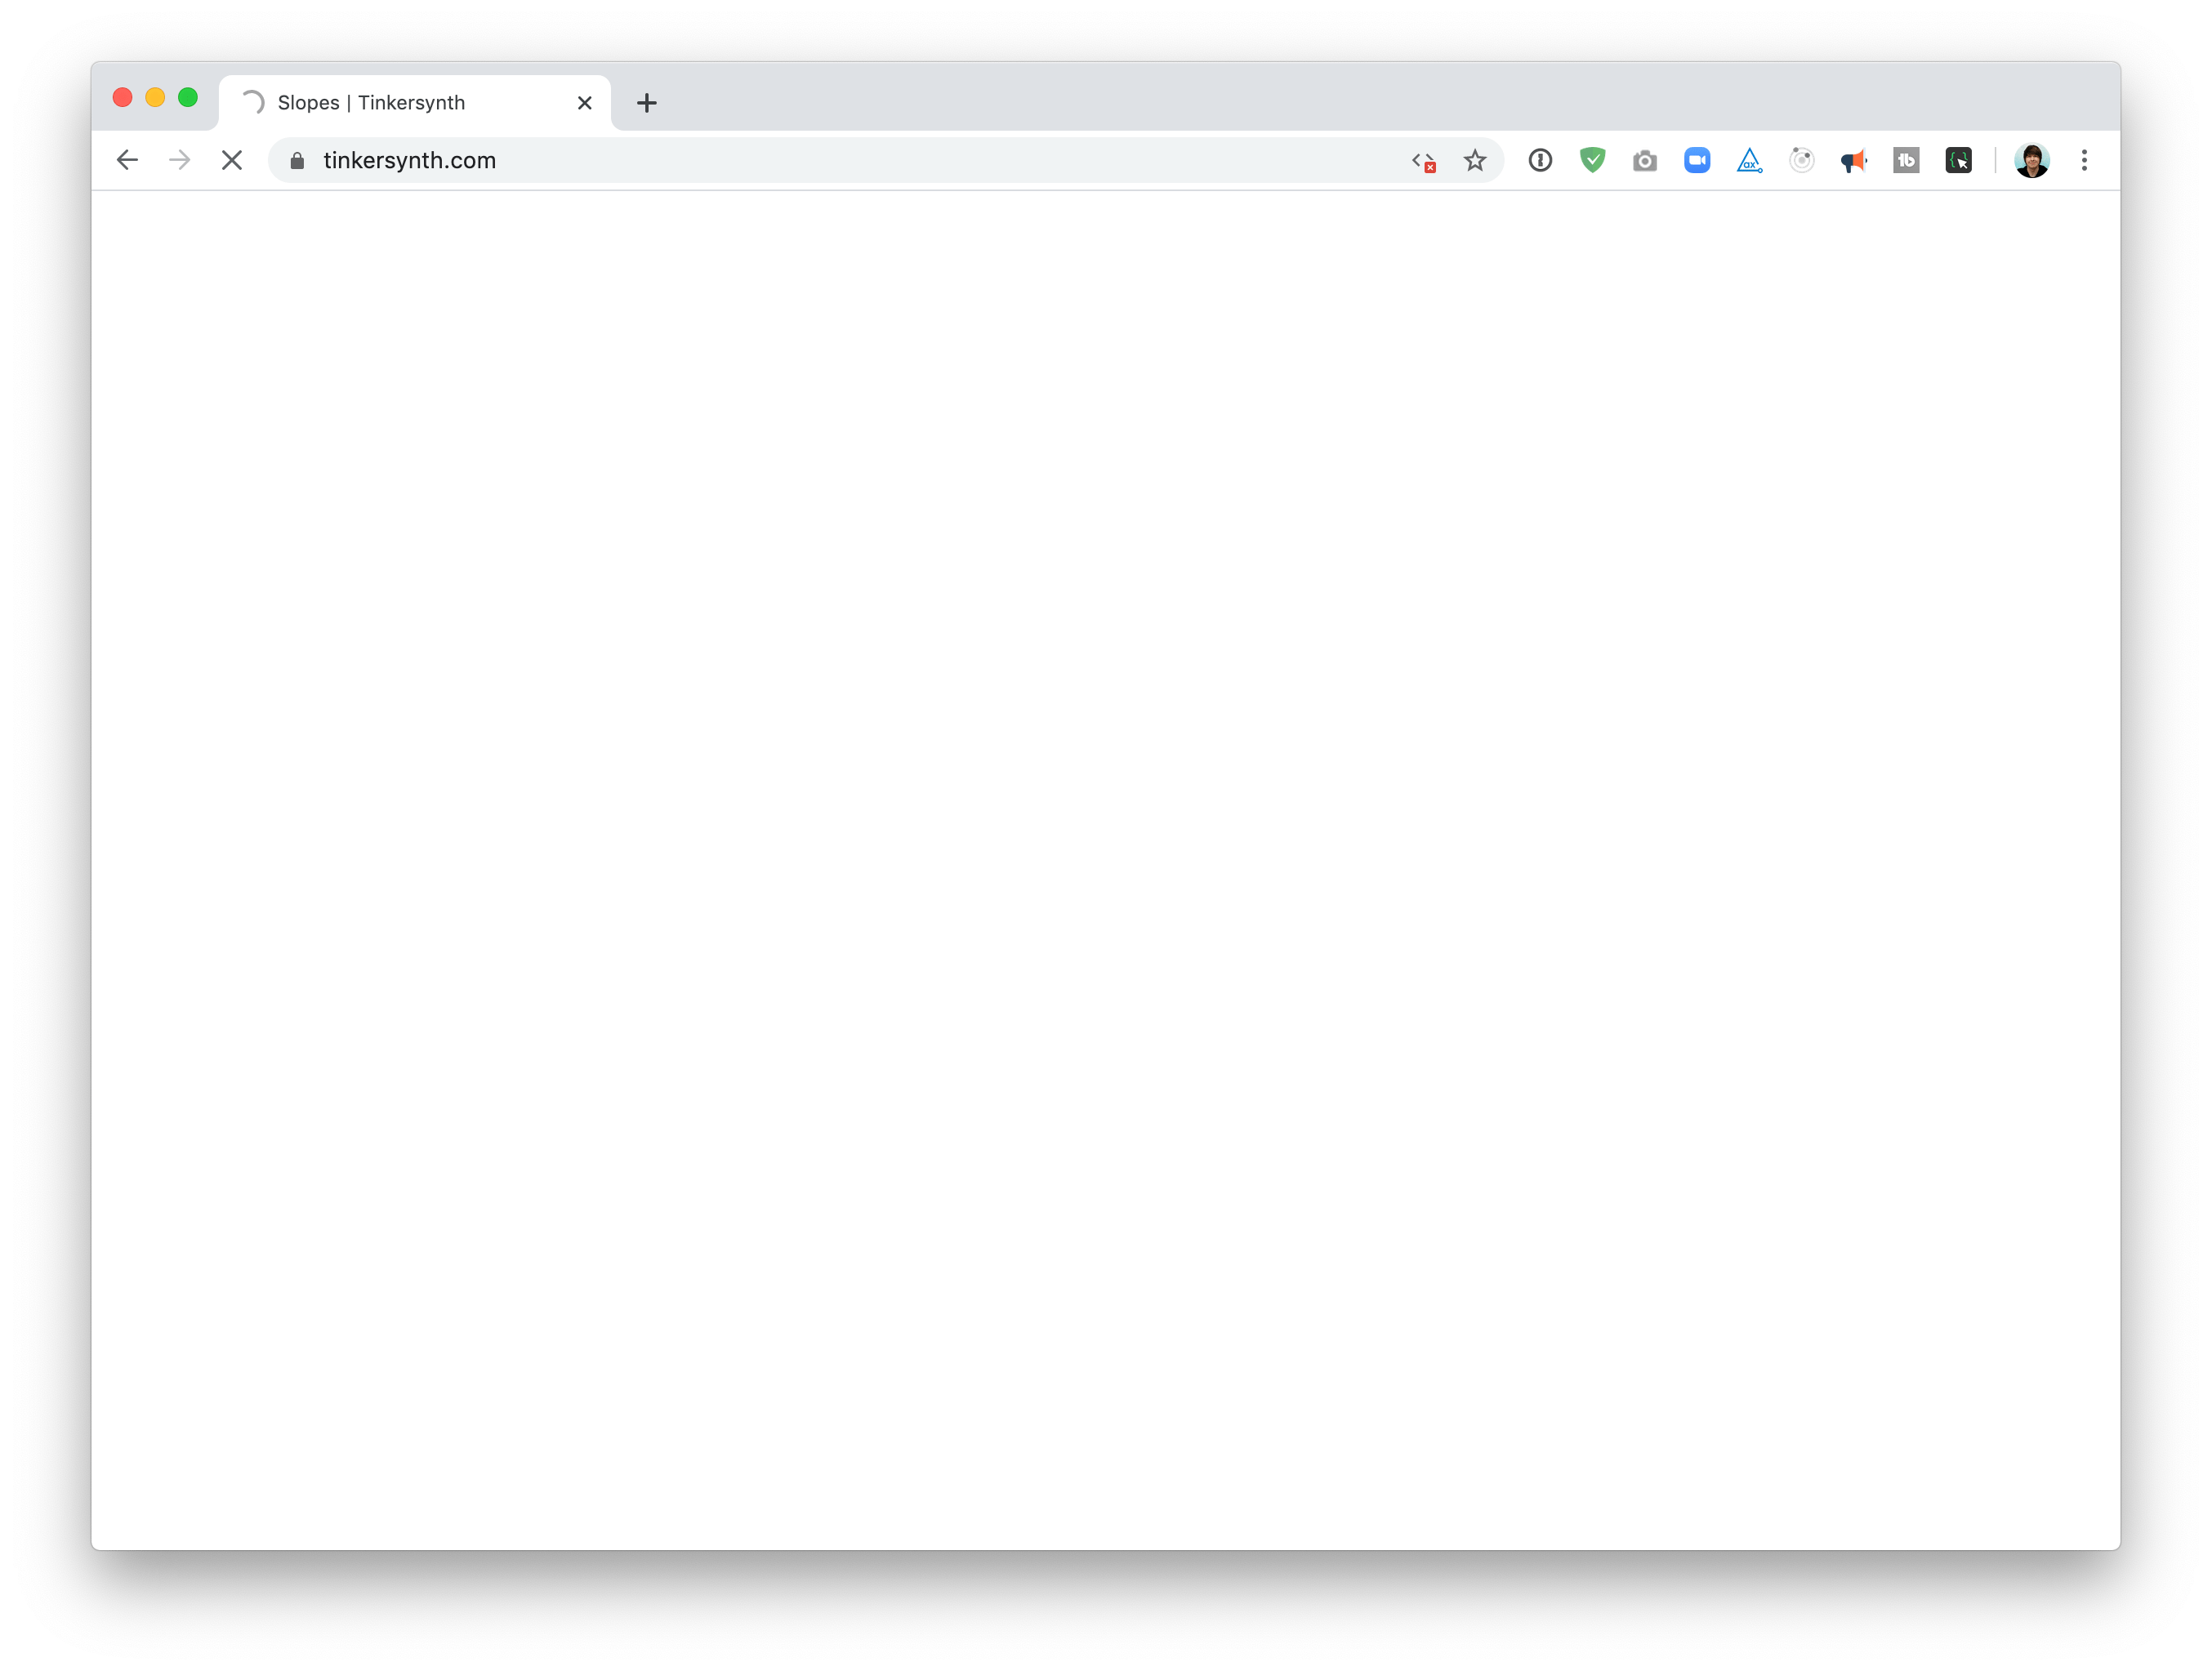 Screenshot of a browser loading a page, with an all-blank screen